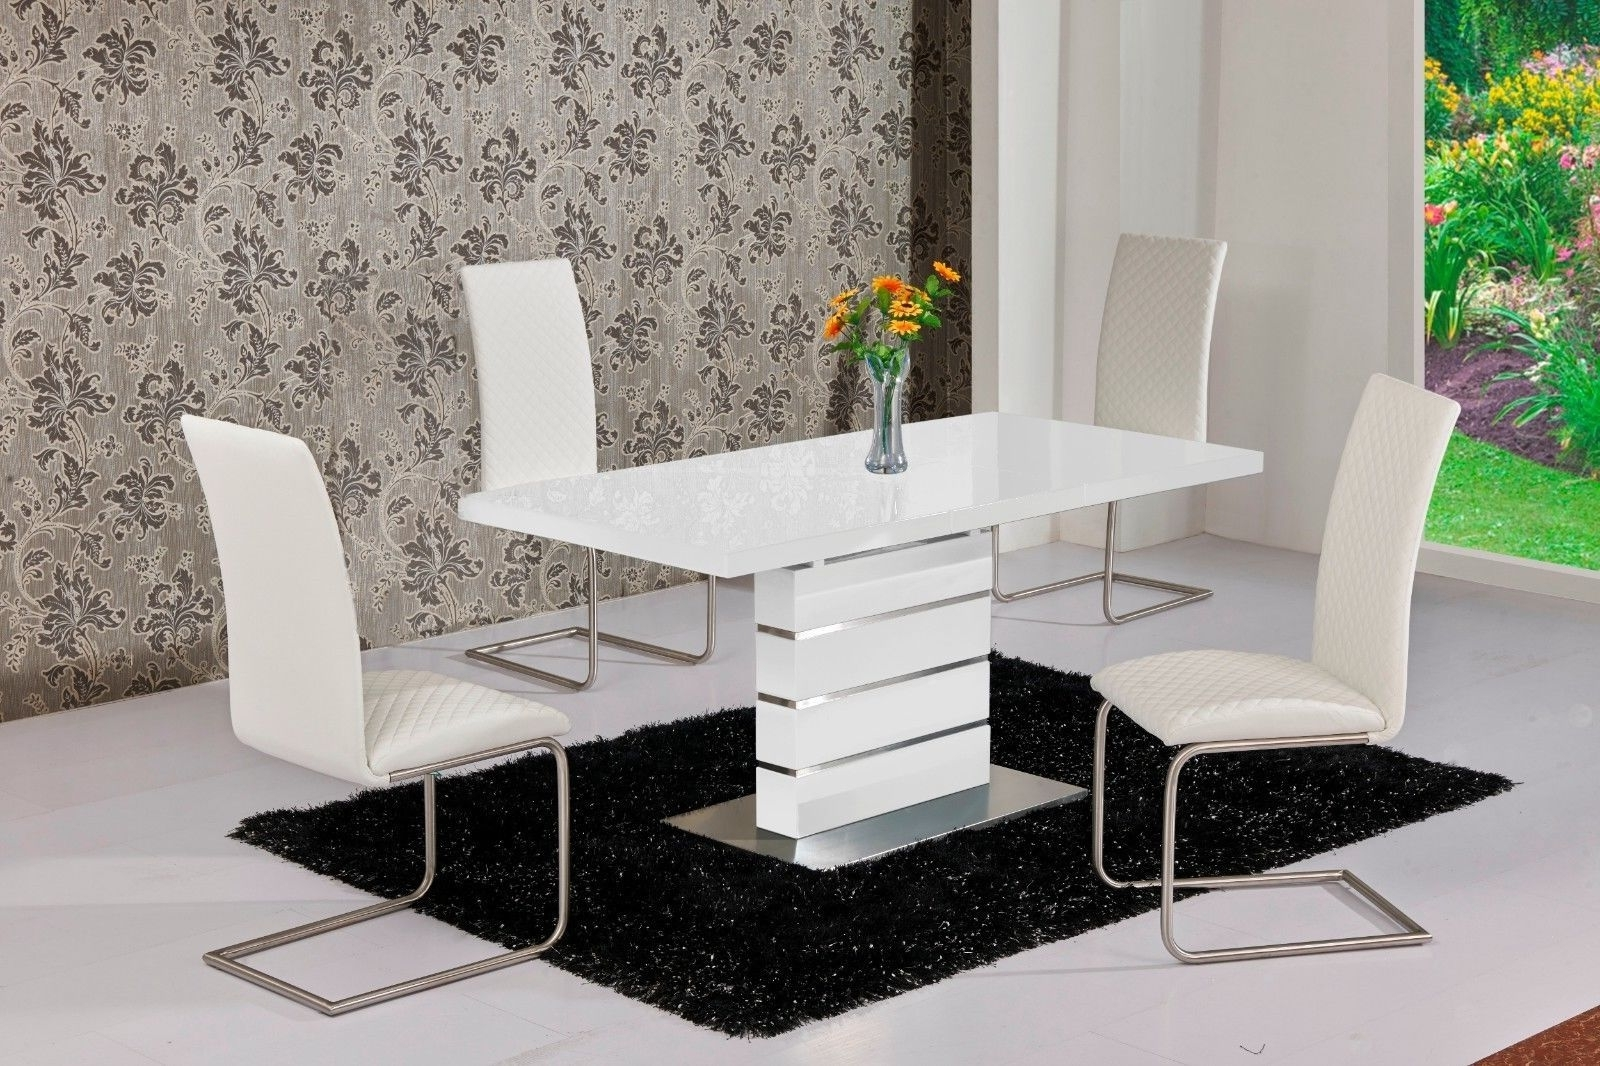 Mace High Gloss Extending 120 160 Dining Table & Chair Set – White For Latest Next White Dining Tables (View 11 of 25)